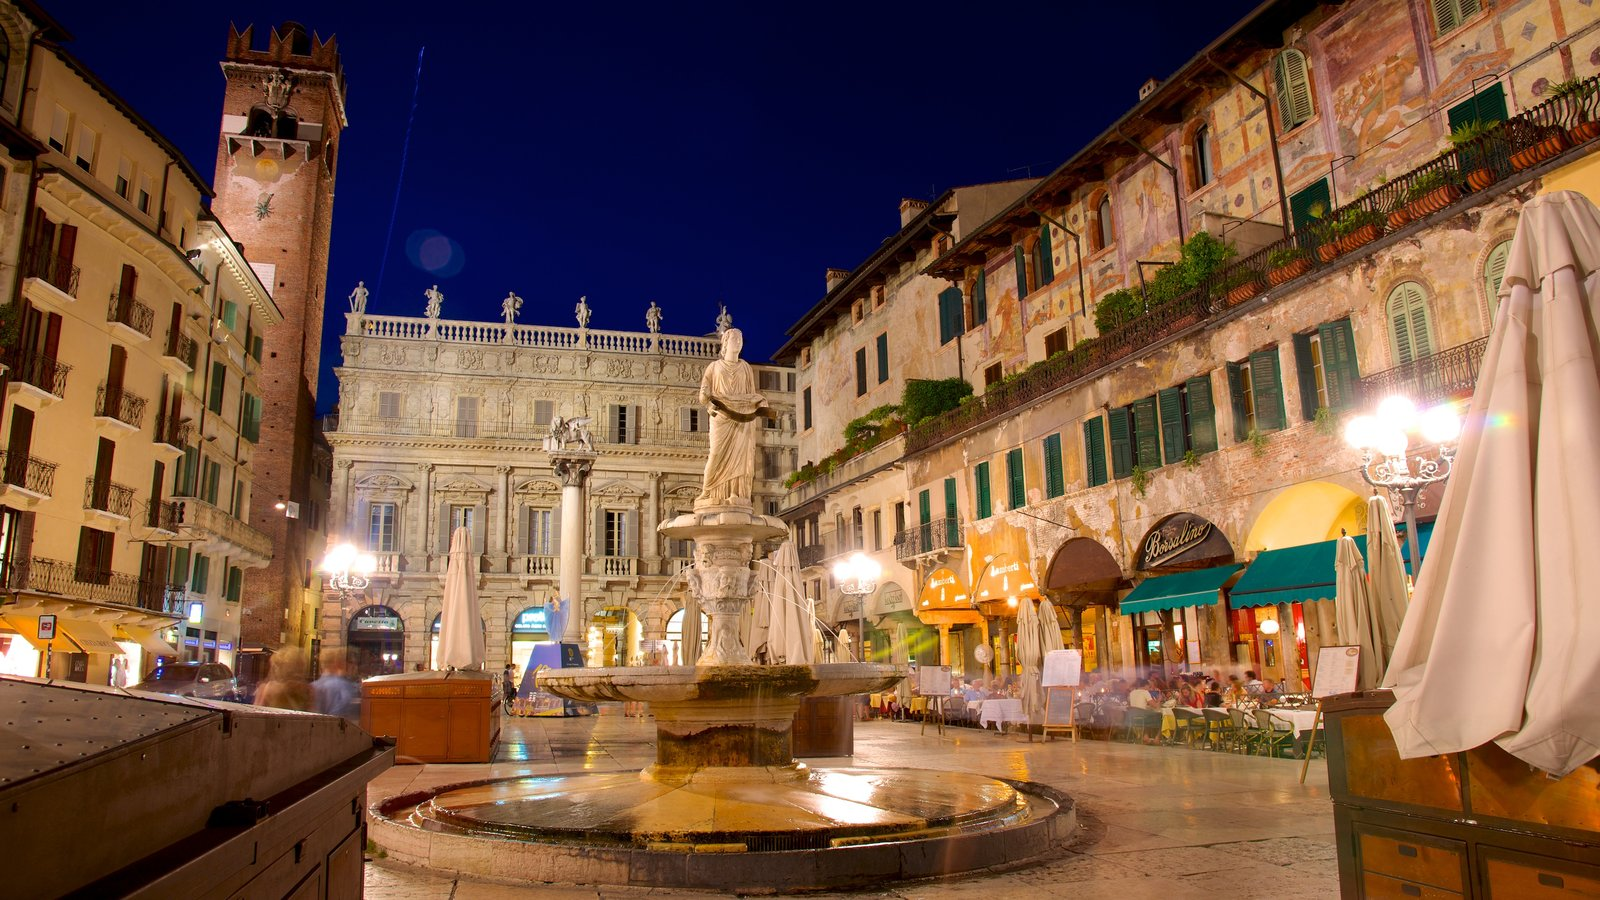 Piazza delle Erbe which includes heritage architecture, a statue or sculpture and a city